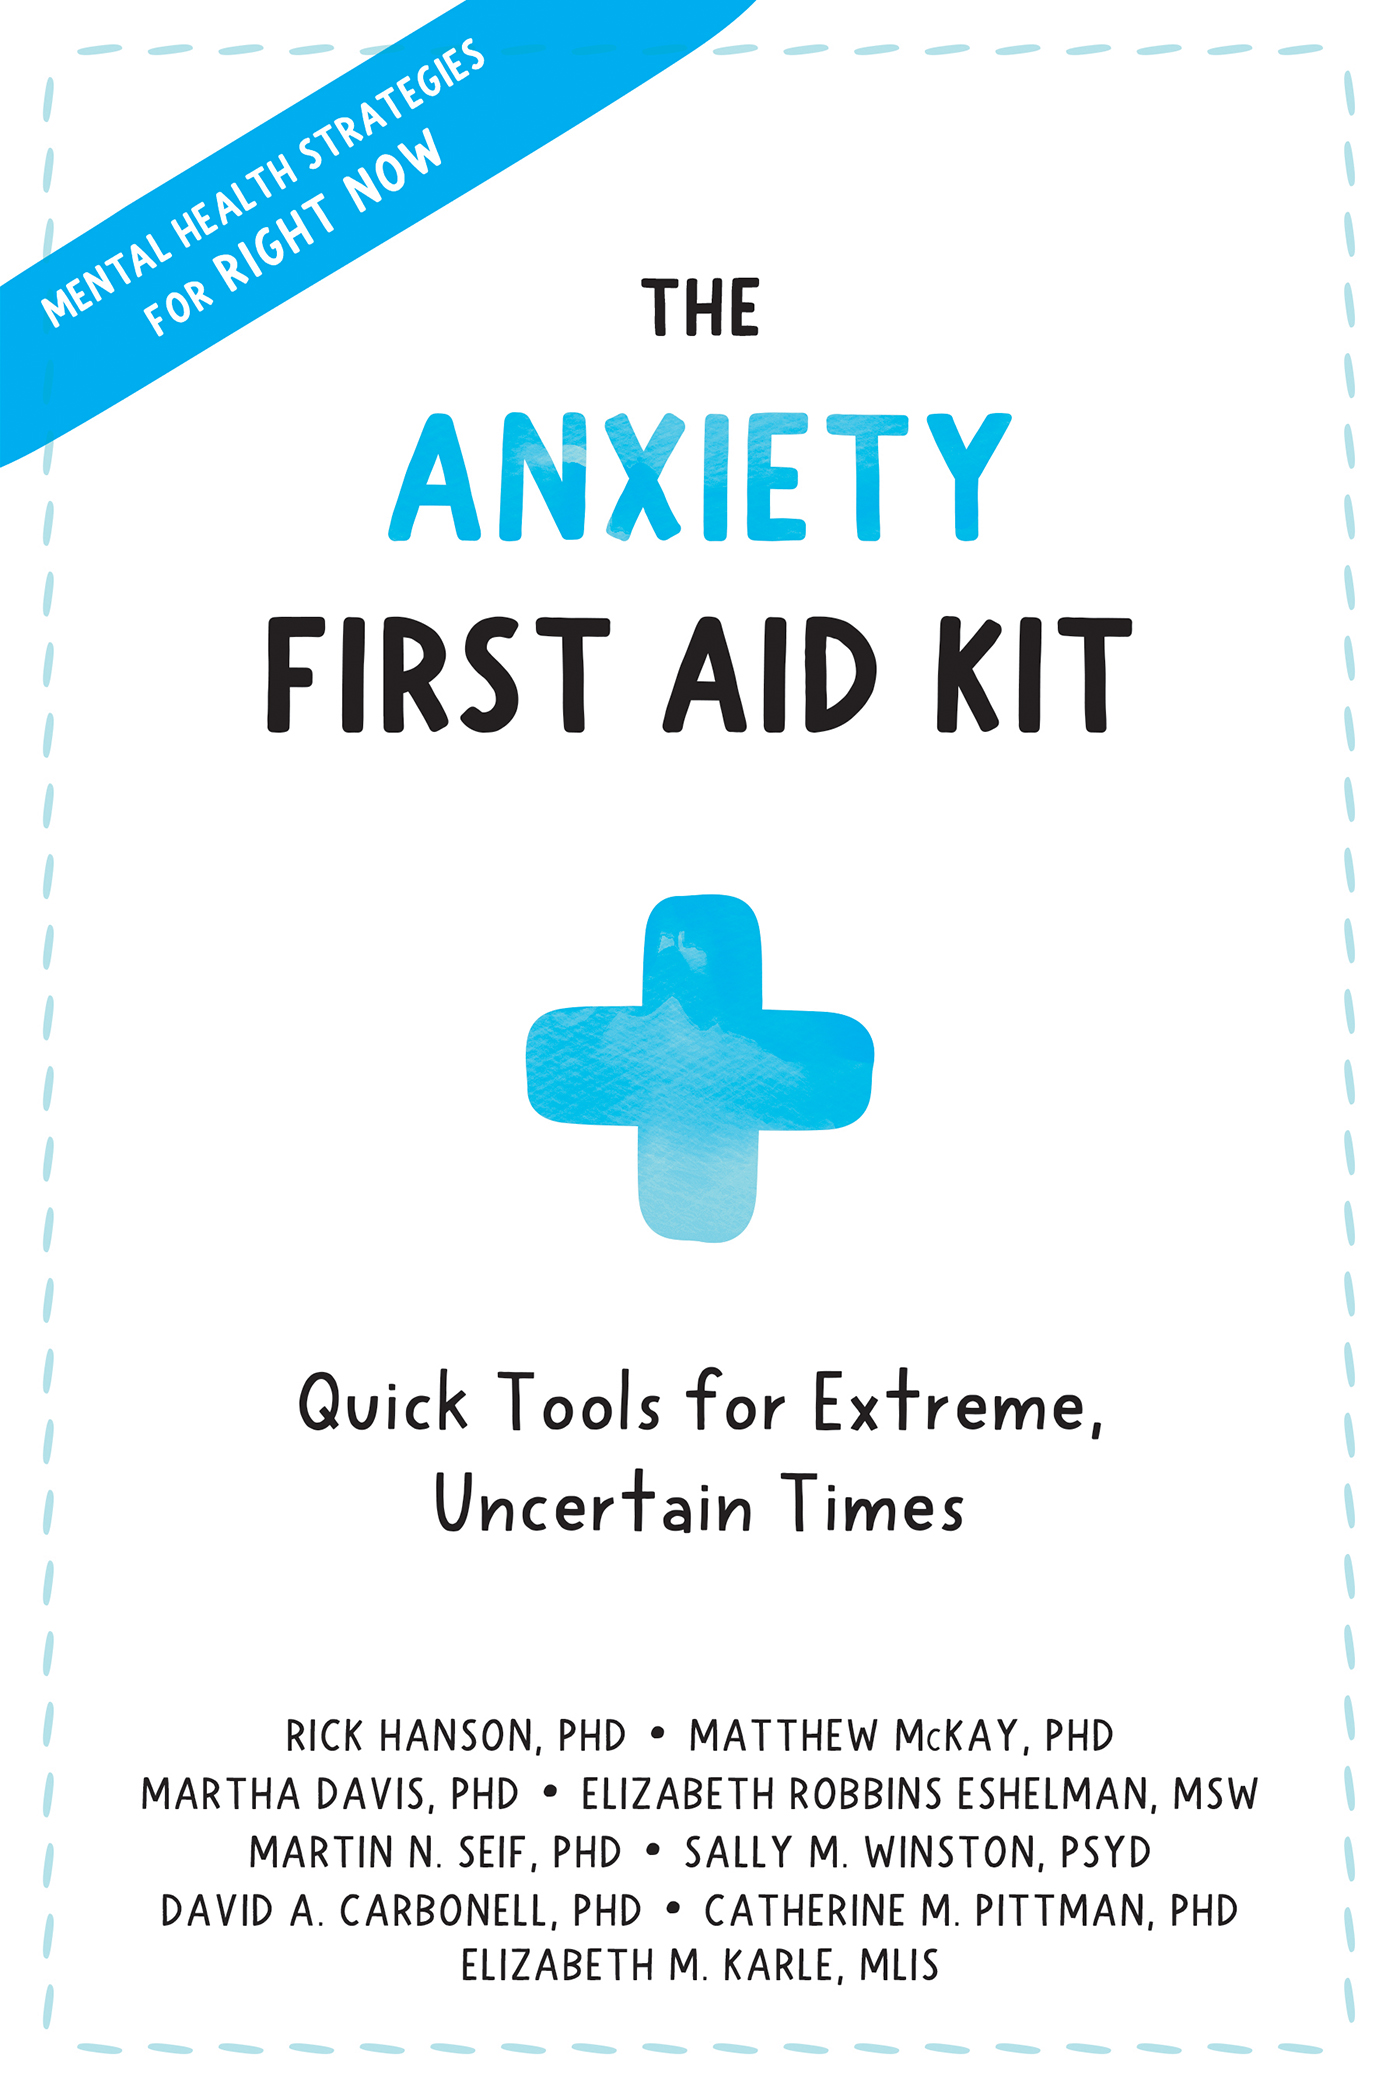 The Anxiety First Aid Kit Quick Tools for Extreme, Uncertain Times